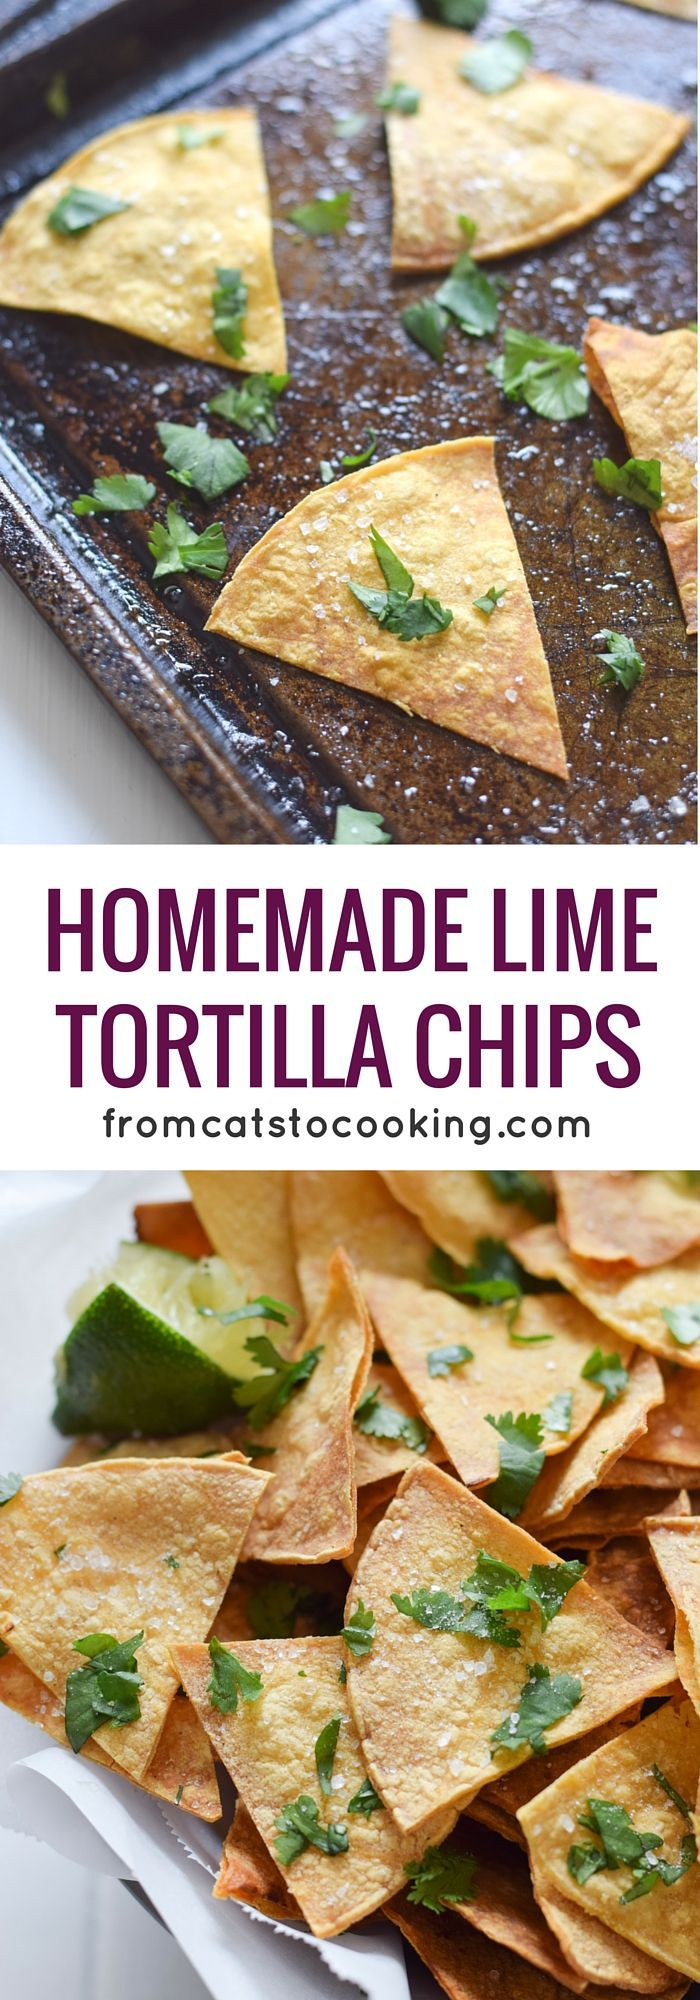 These Homemade Lime Tortilla Chips are crunchy, salty, easy to make and are baked with a hint of lime for a nice little zesty kick. They've taken my chips and salsa game to a whole new level! Perfect on their own as a snack or with some guac or salsa as a